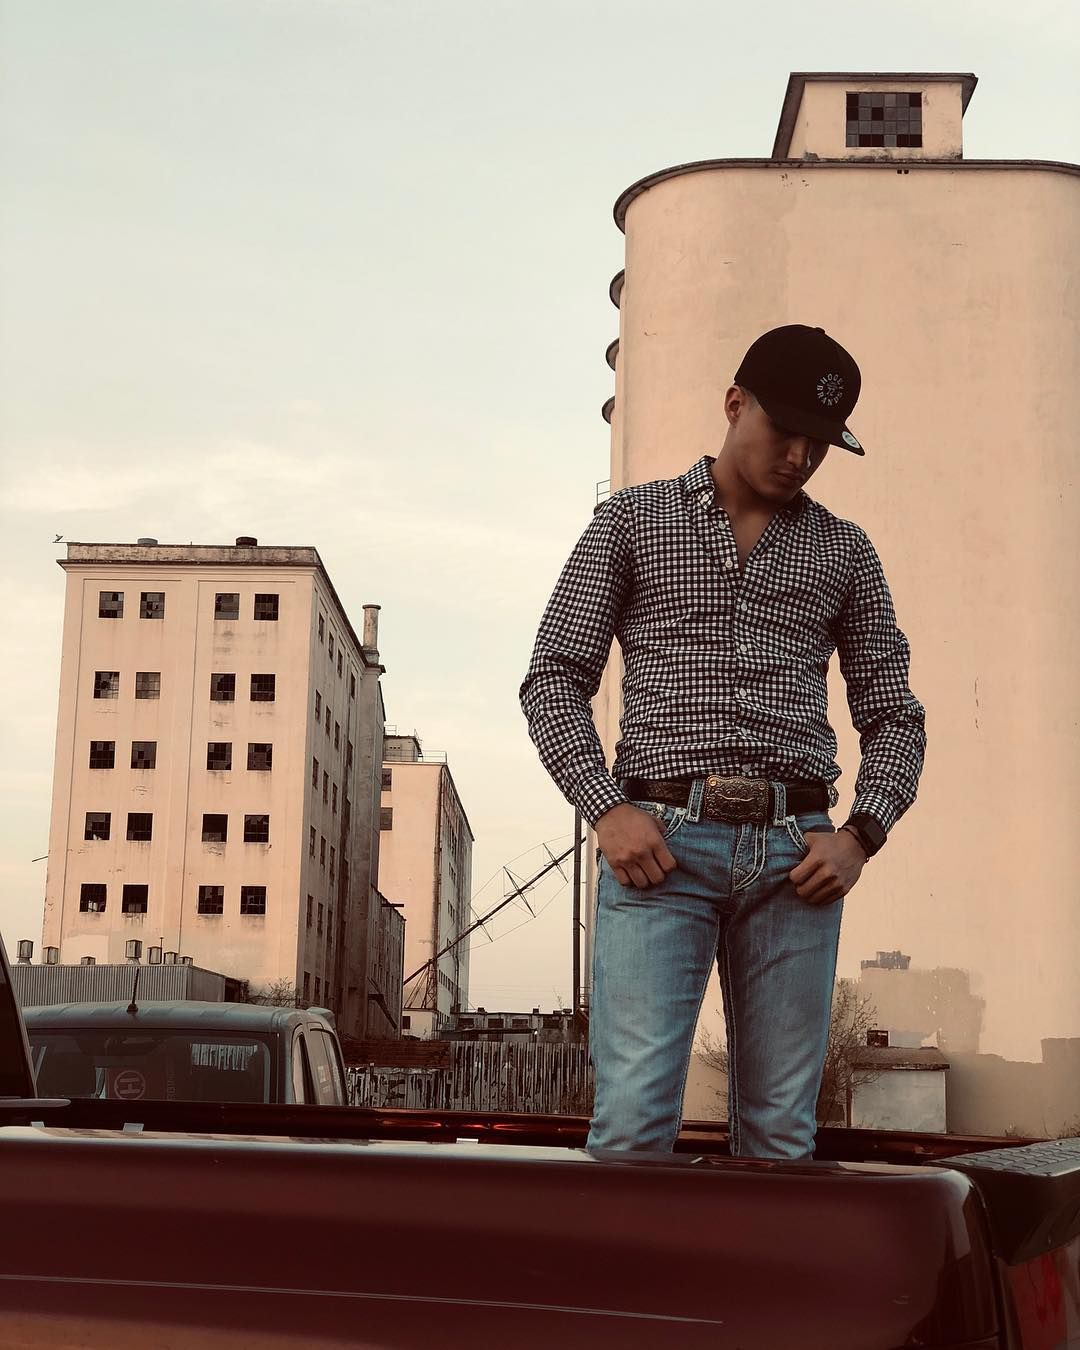 Pin By Eli On Charro Outfit In 2020 Cowboy Outfit For Men Cute Mexican Boys Cute Country Boys